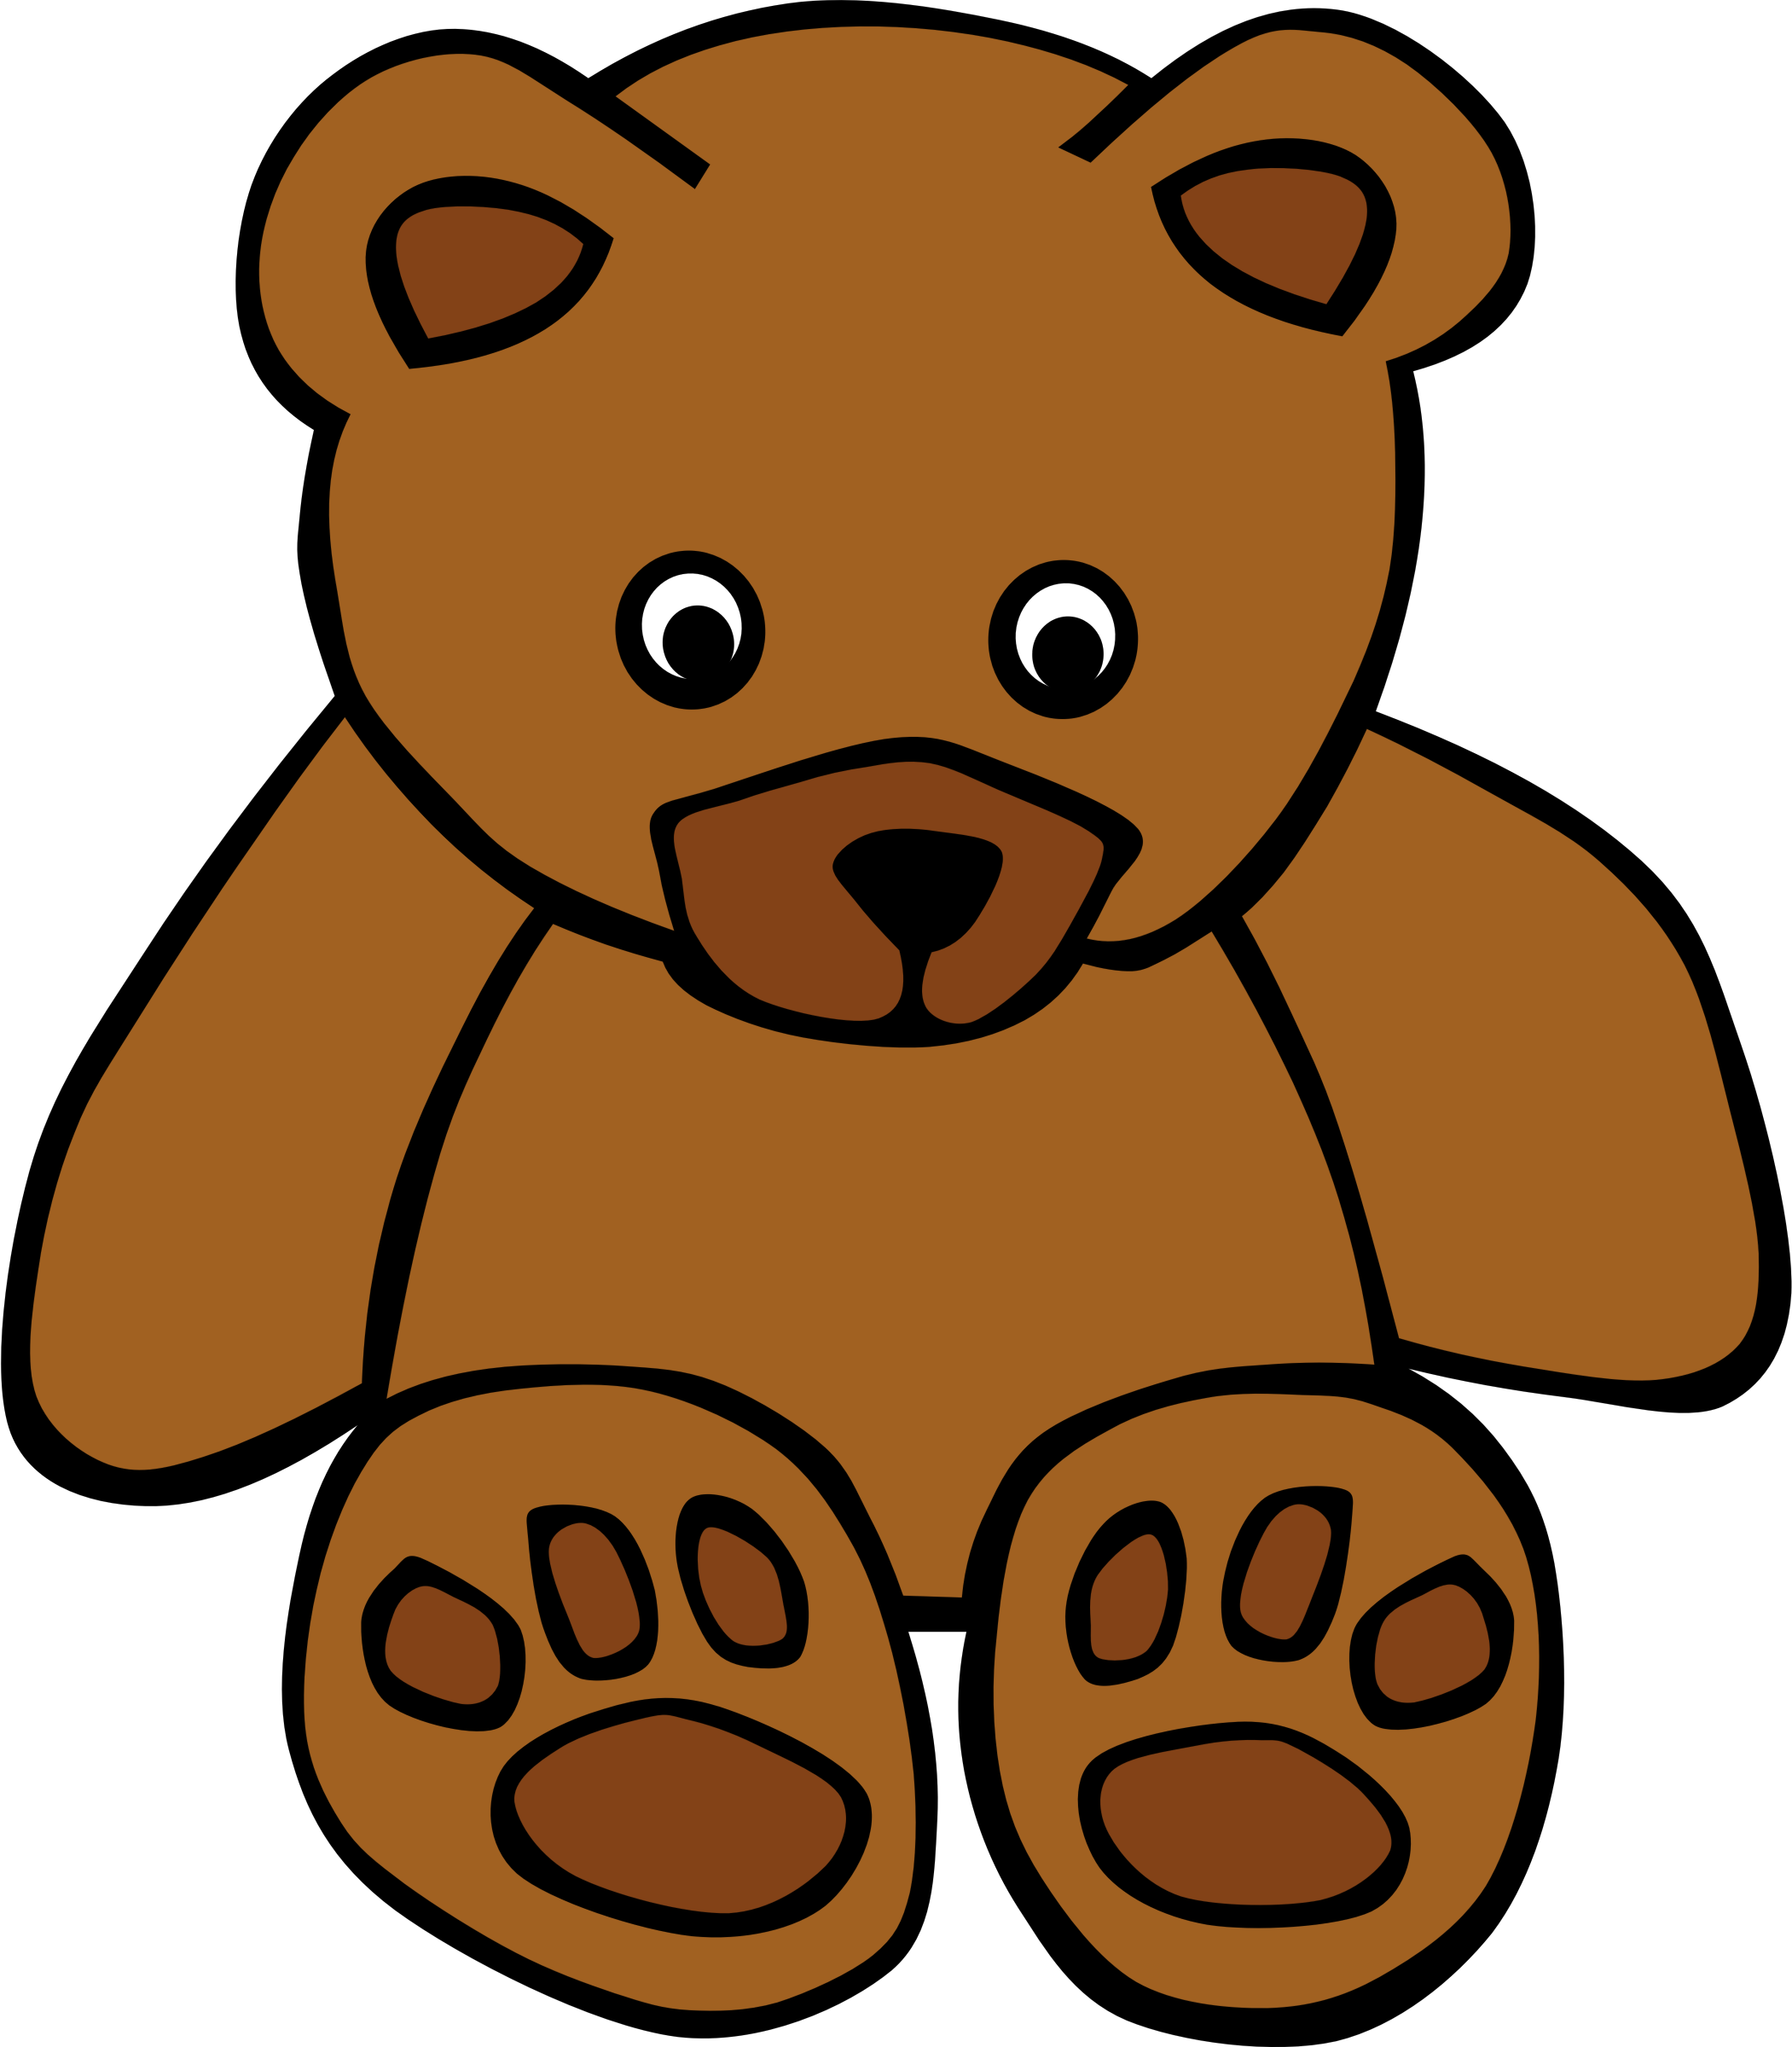 Simple Teddy Bear by Gerald_G